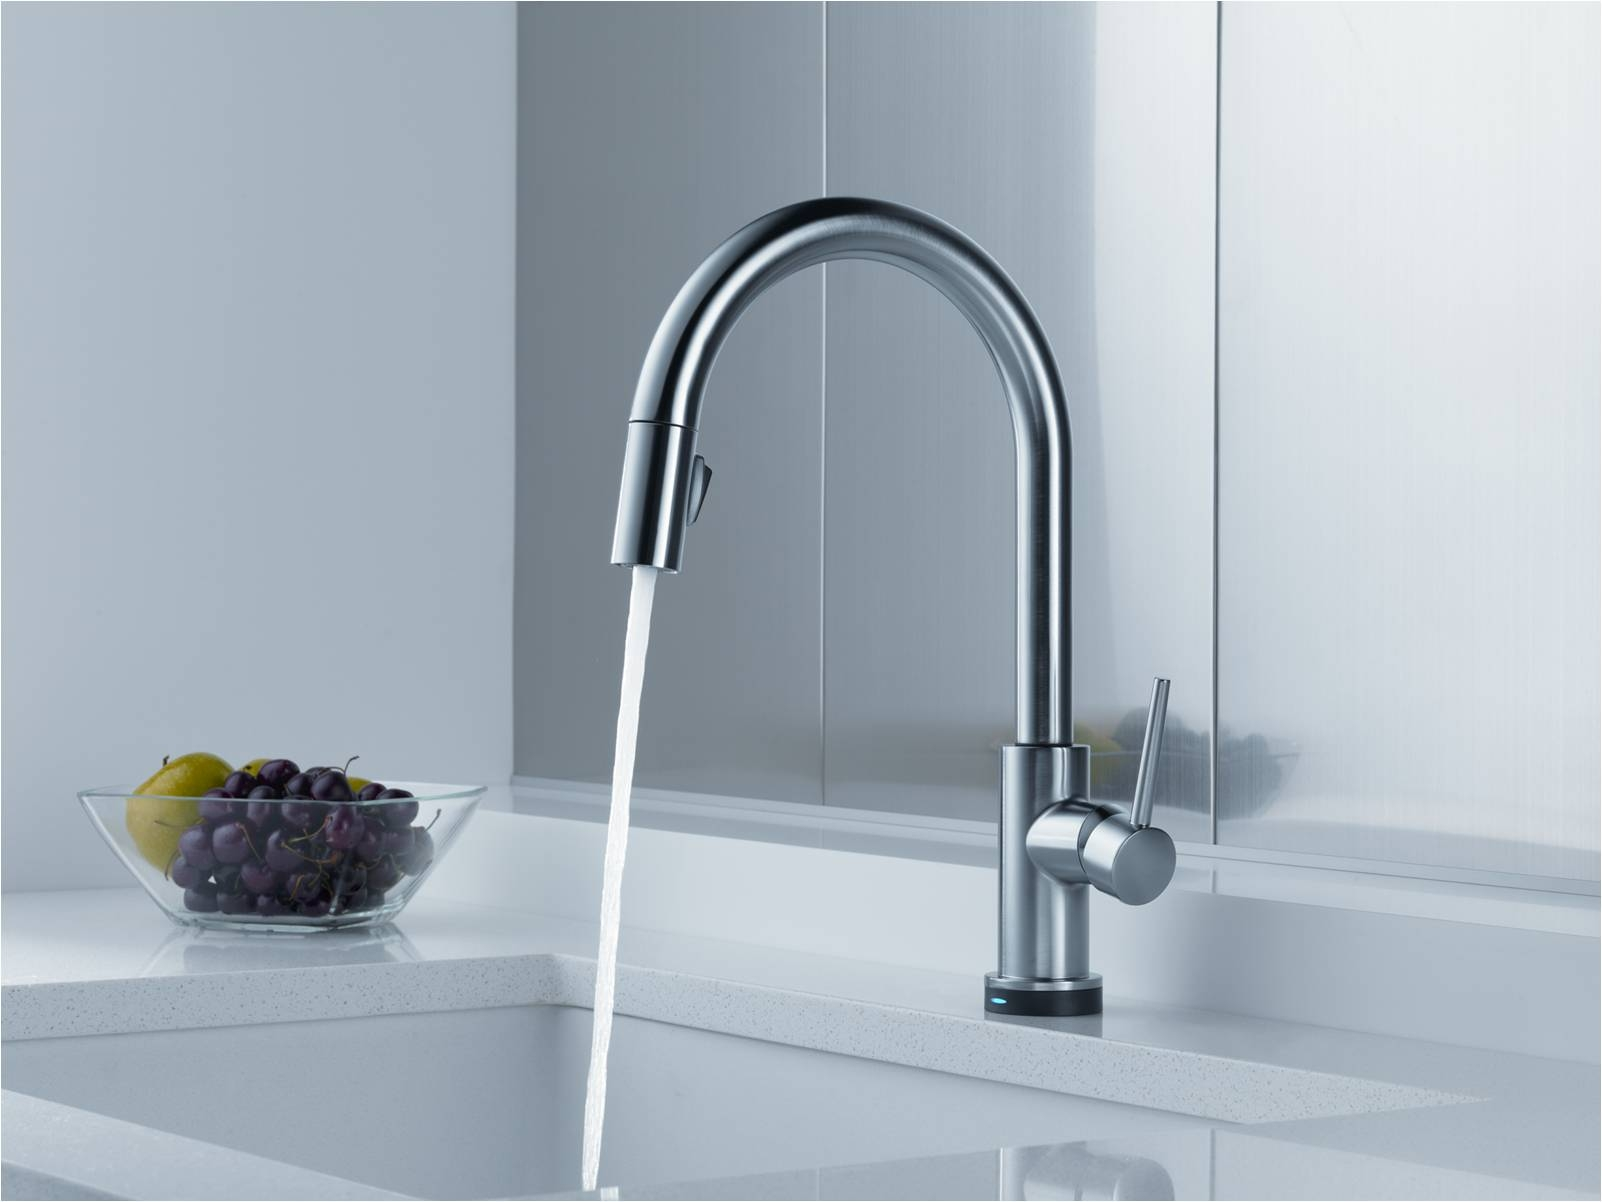 Ideas, delta farm sink faucets delta farm sink faucets dining kitchen make your kitchen looks elegant with lavish 1602 x 1202  .